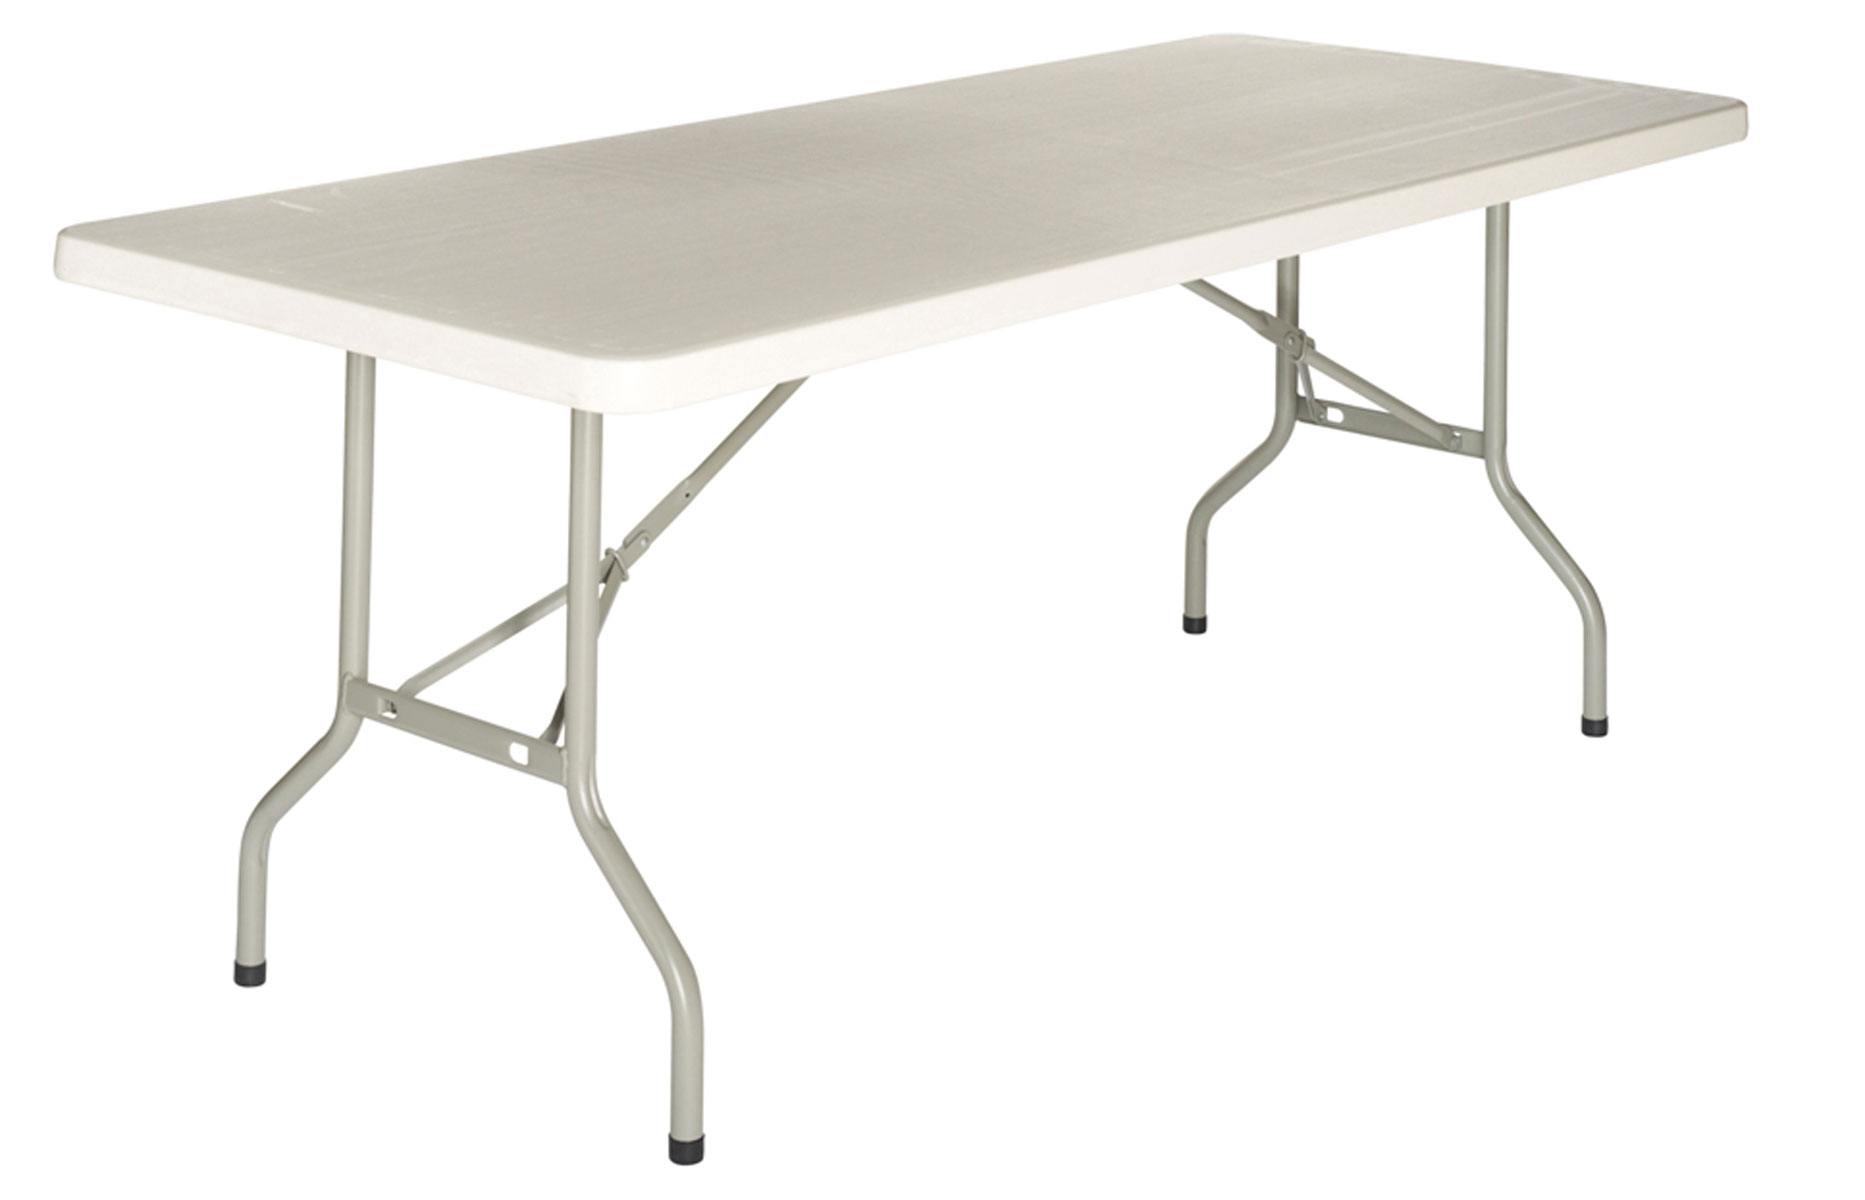 Table Pliante En Plastique Gris Beige Tulle Disponible 3 - Table Pliable Ikea